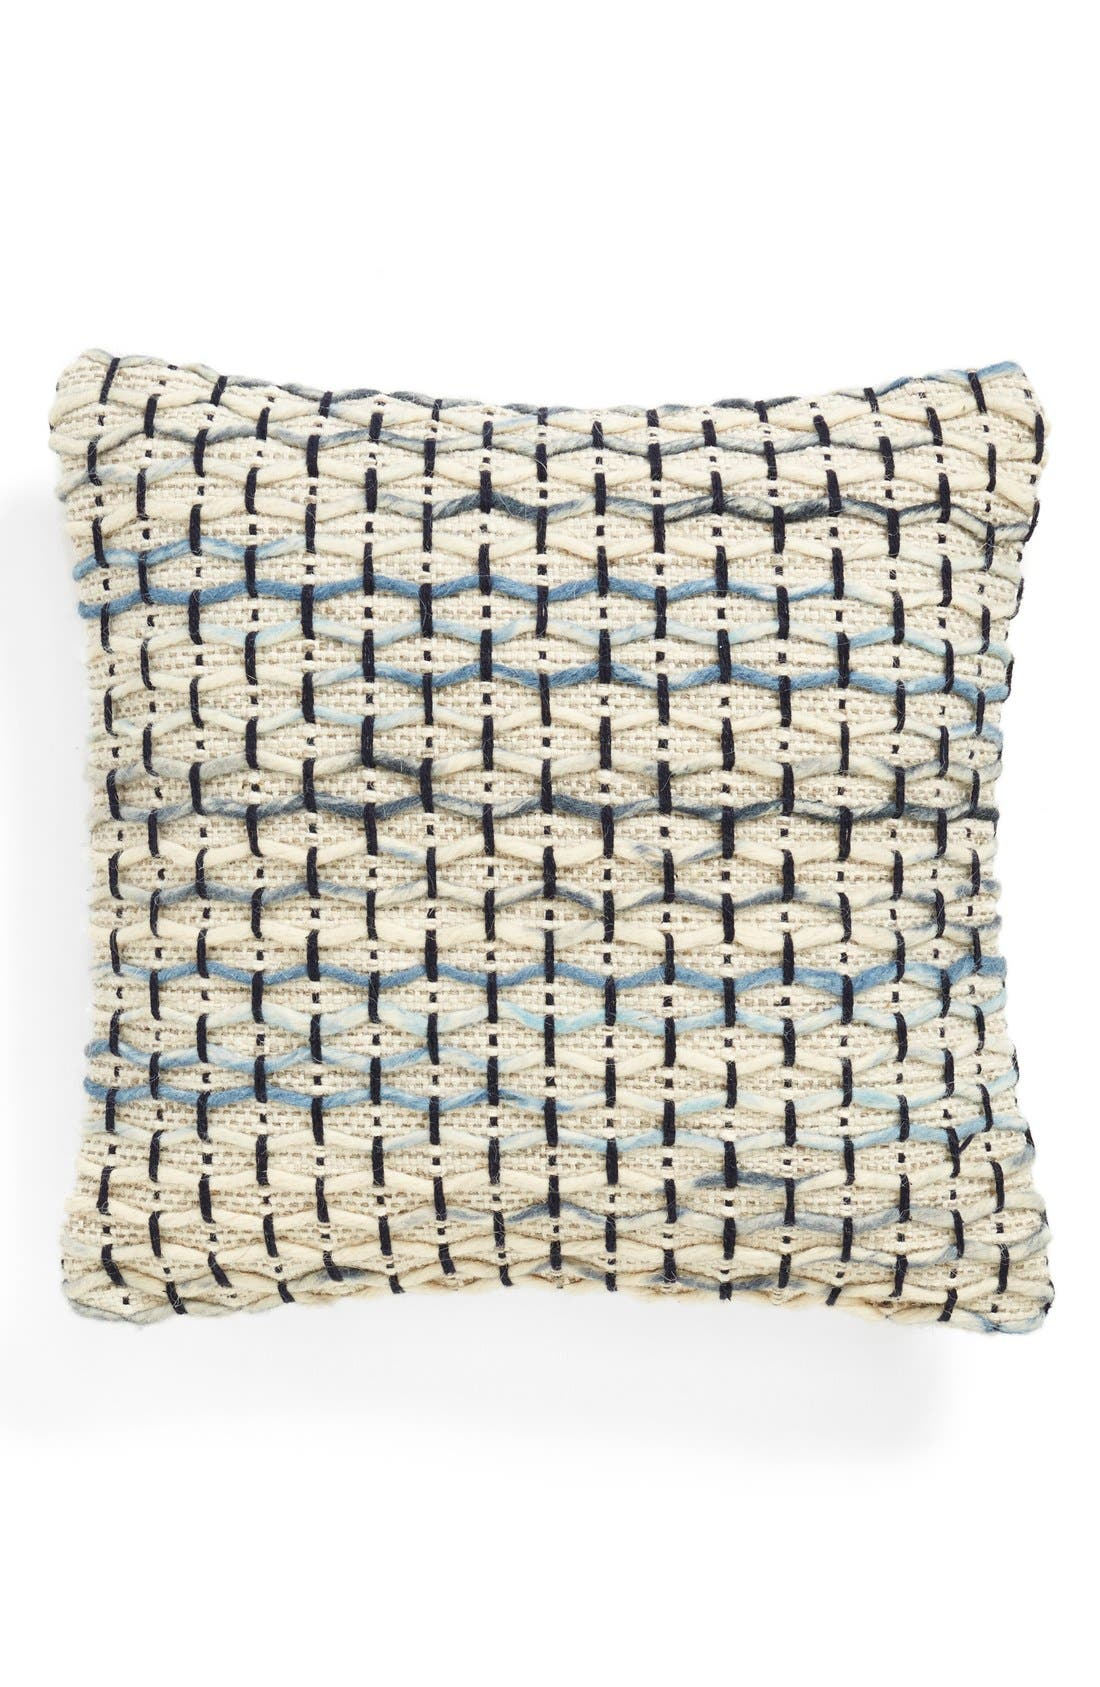 Alternate Image 1 Selected - Brentwood Originals 'Knitted Lines' Jute Accent Pillow